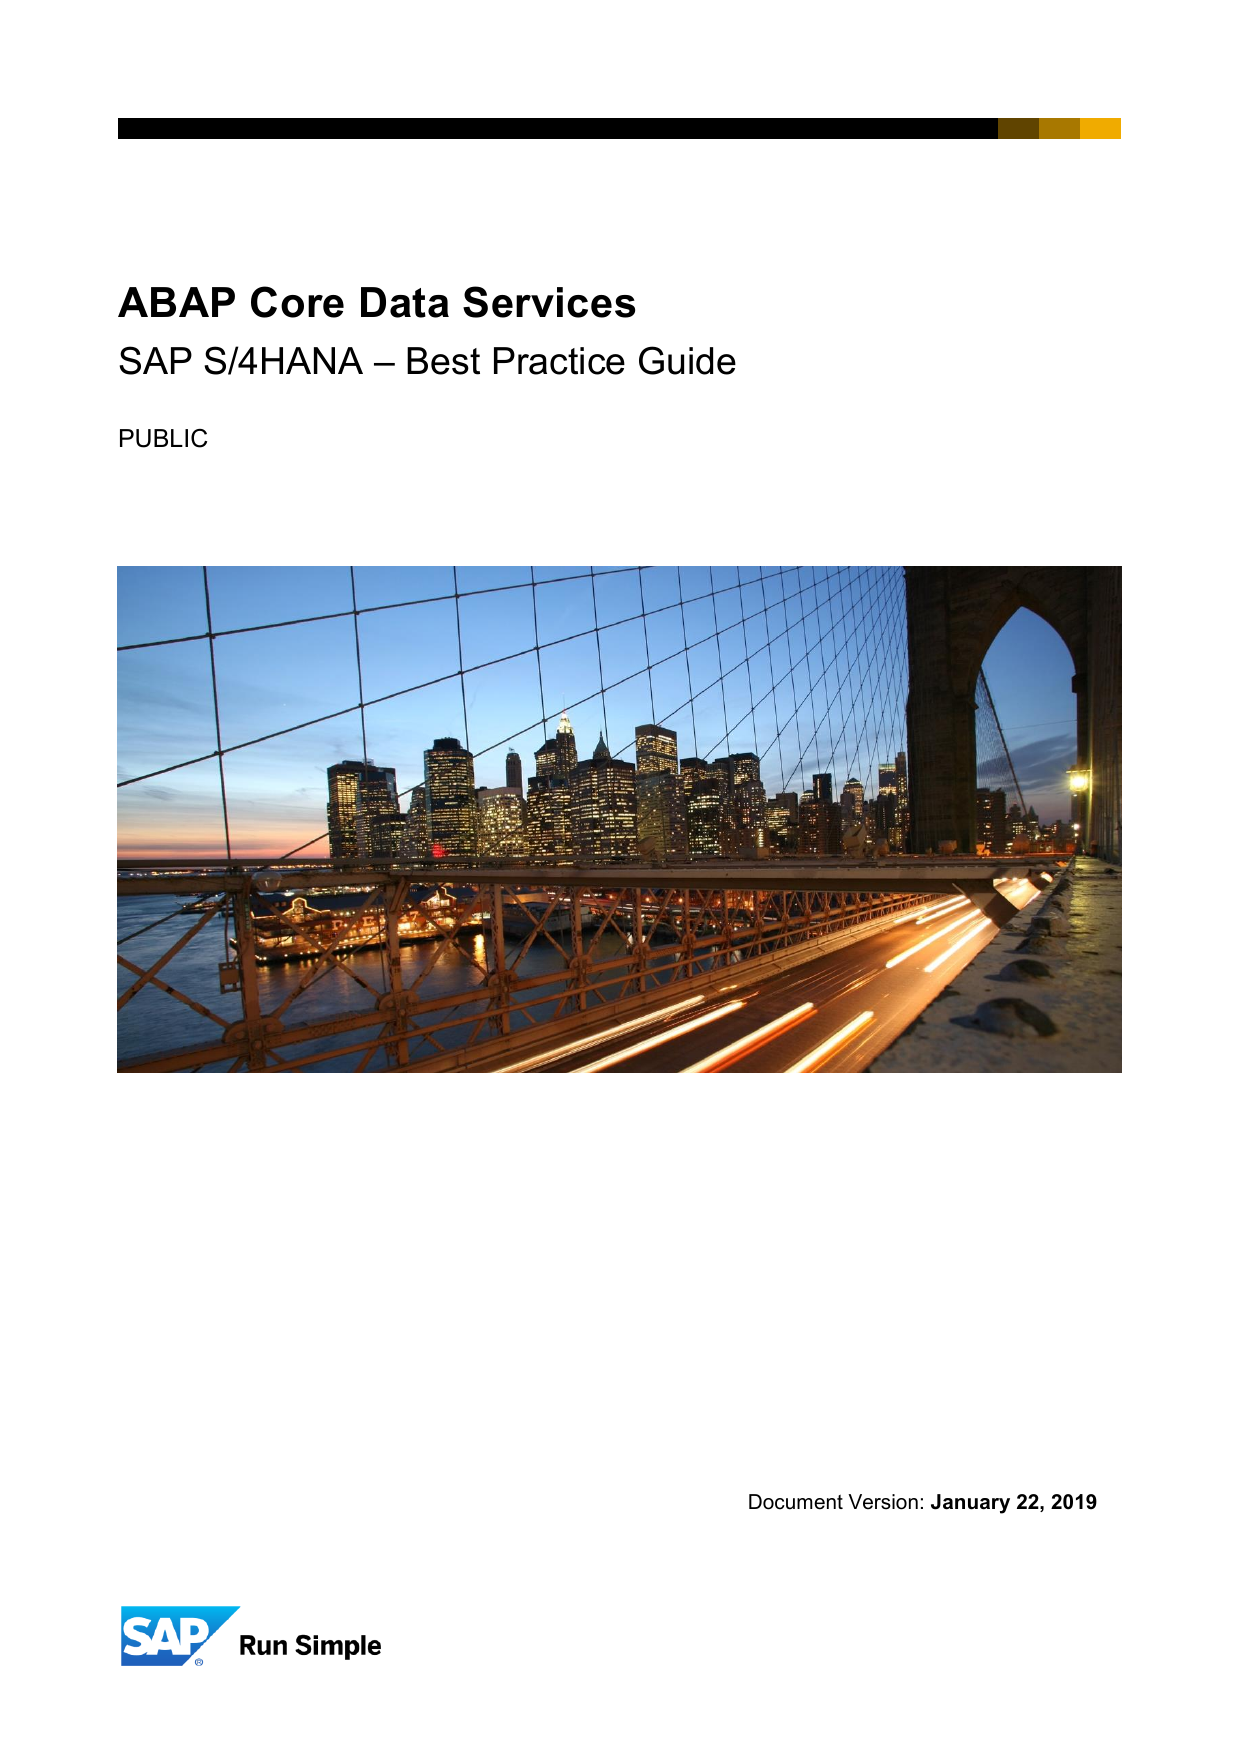 ABAP CDS Best Practice Guide